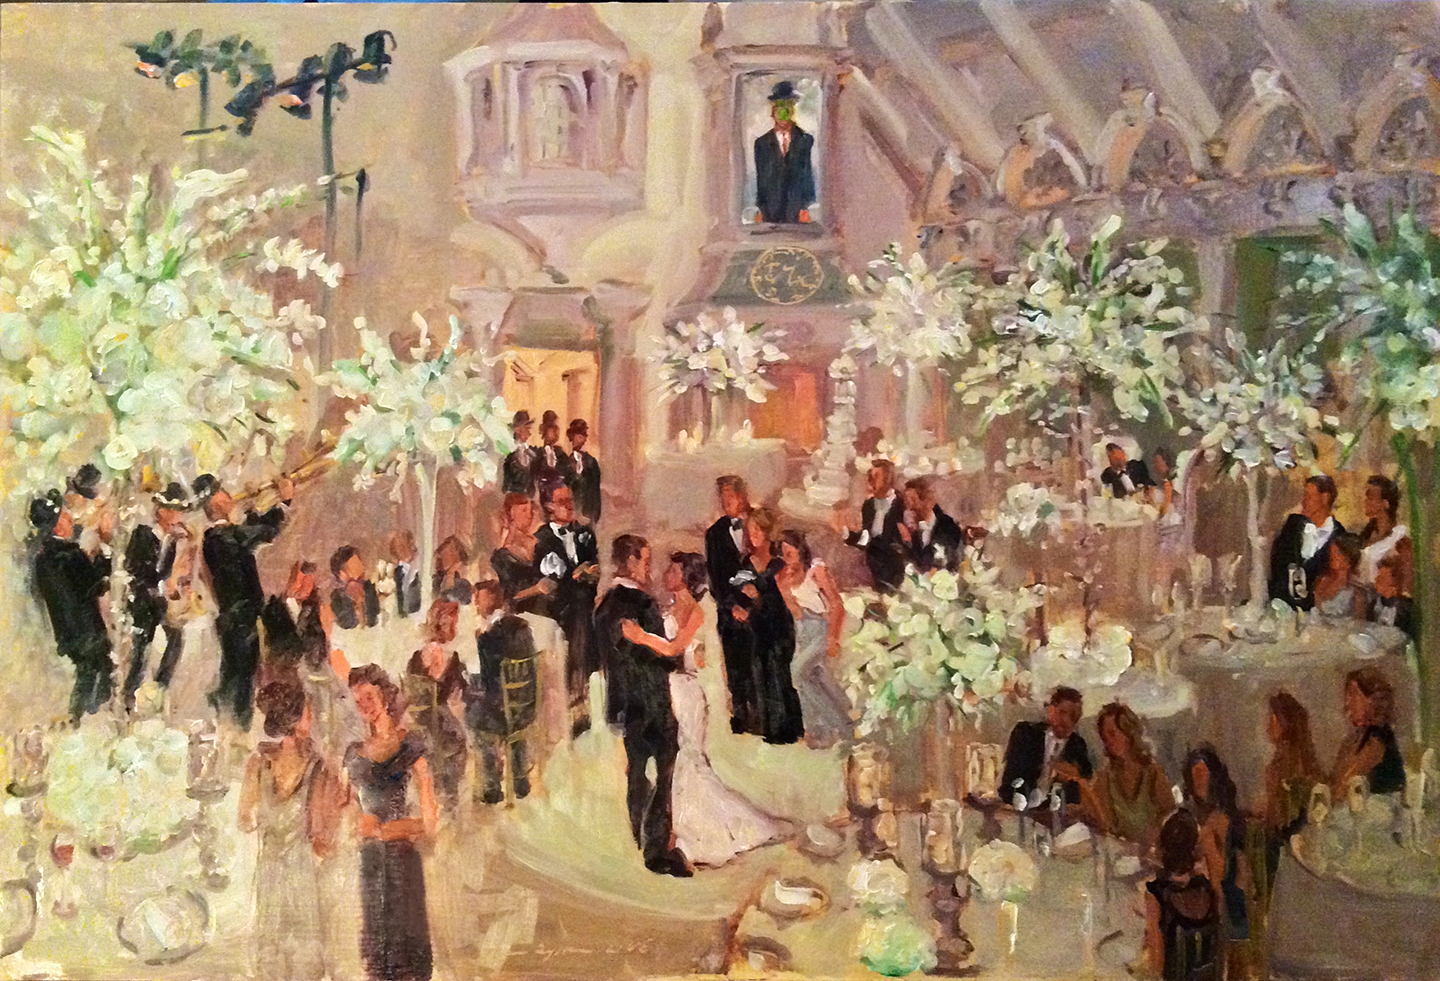 Live Wedding Painting At The Ashford Estate Nj With Men In Bowler Hats From Thomas